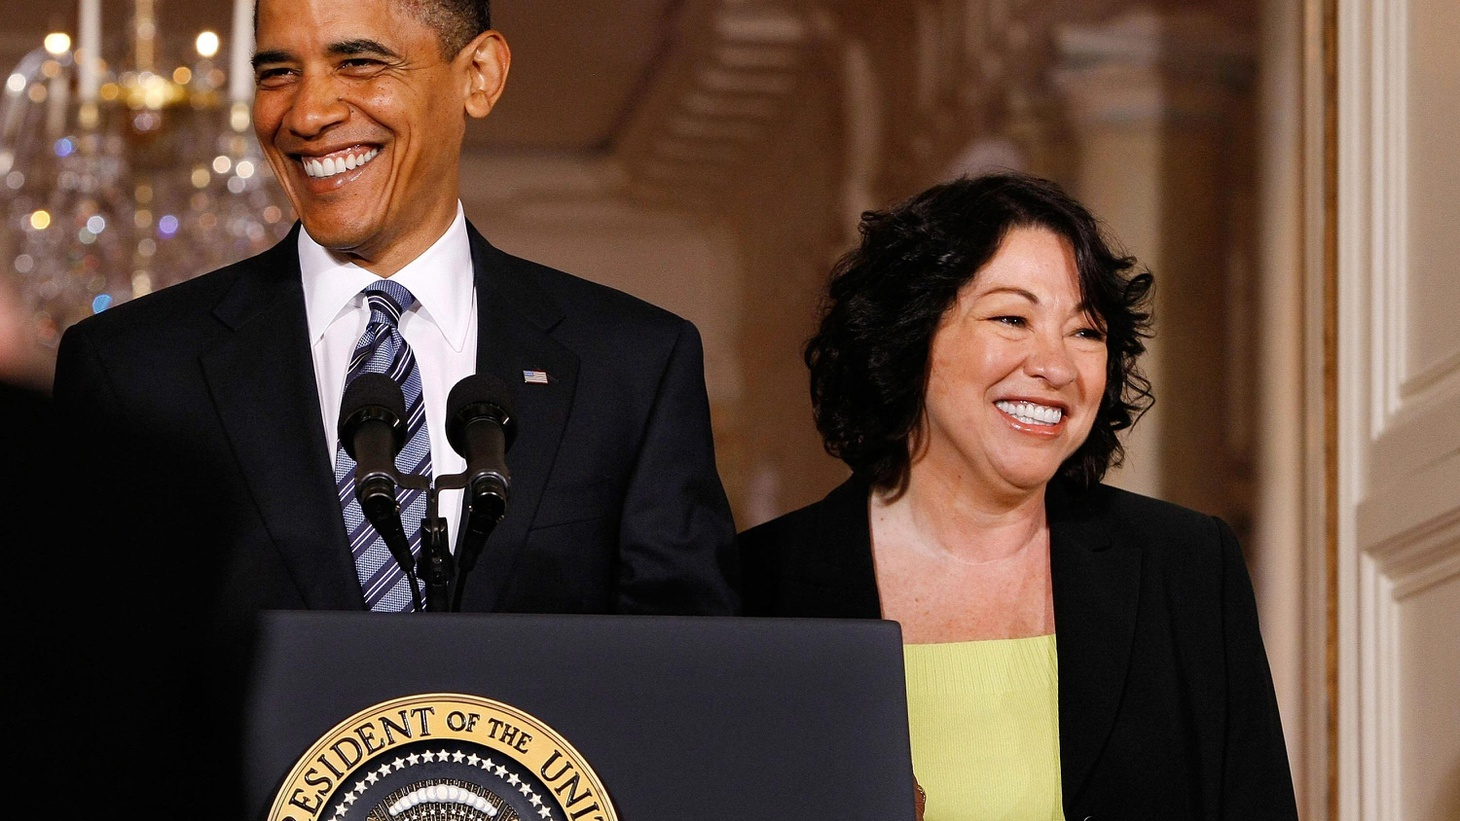 President Obama this morning named Sonia Sotomayor to fill the seat of retiring Justice David Souter on the Supreme Court. If confirmed, 54-year-old Sotomayor would bring nearly 17 years of experience on the federal bench and a history of bipartisan appeal to the high court. The daughter of Puerto Rican-born parents would be the first Latina to sit on the Court. KCRW presents a one-hour National Public Radio special, hosted by Neal Conan, which will contain live coverage of the President's announcement. Guests include NPR Senior Washington Editor Ron Elving, NPR Legal Affairs Correspondent Nina Totenberg, NPR Political Correspondent Mara Liasson, and NPR Justice Correspondent Ari Shapiro. (Special broadcast airs 4-5pm.)